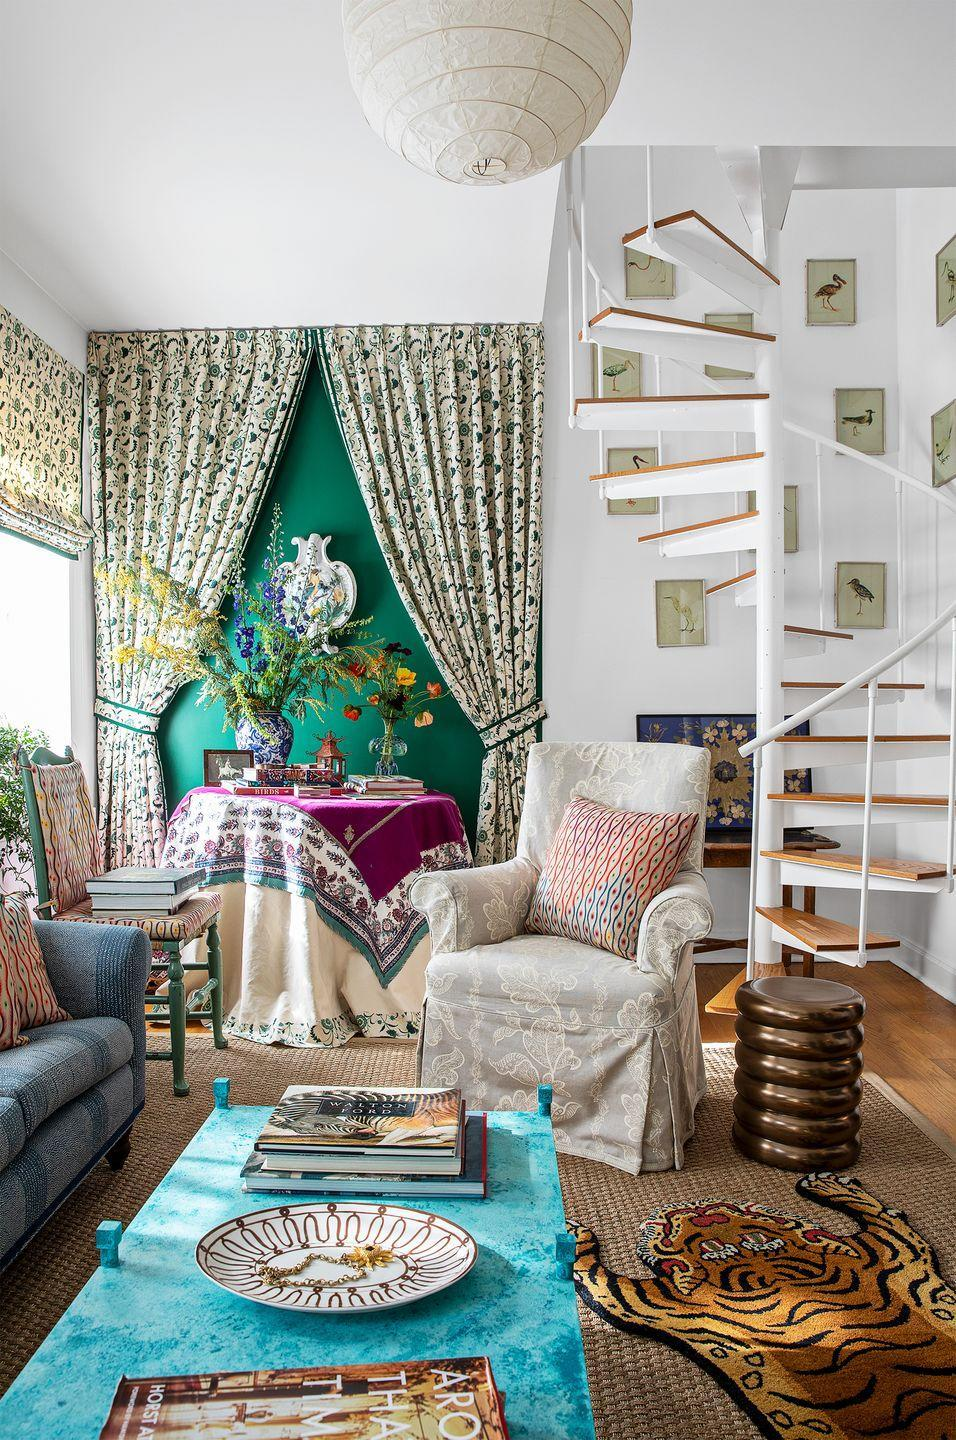 """<p>""""I love the juxtaposition between the traditional space and the modern staircase,"""" says Eliza Crater of <a href=""""https://sisterparishdesign.com/"""" rel=""""nofollow noopener"""" target=""""_blank"""" data-ylk=""""slk:Sister Parish Design"""" class=""""link rapid-noclick-resp"""">Sister Parish Design</a>. The rich kelly green accent wall and decorative floral curtains help bring some fullness and warmth to otherwise all-white surfaces. </p>"""